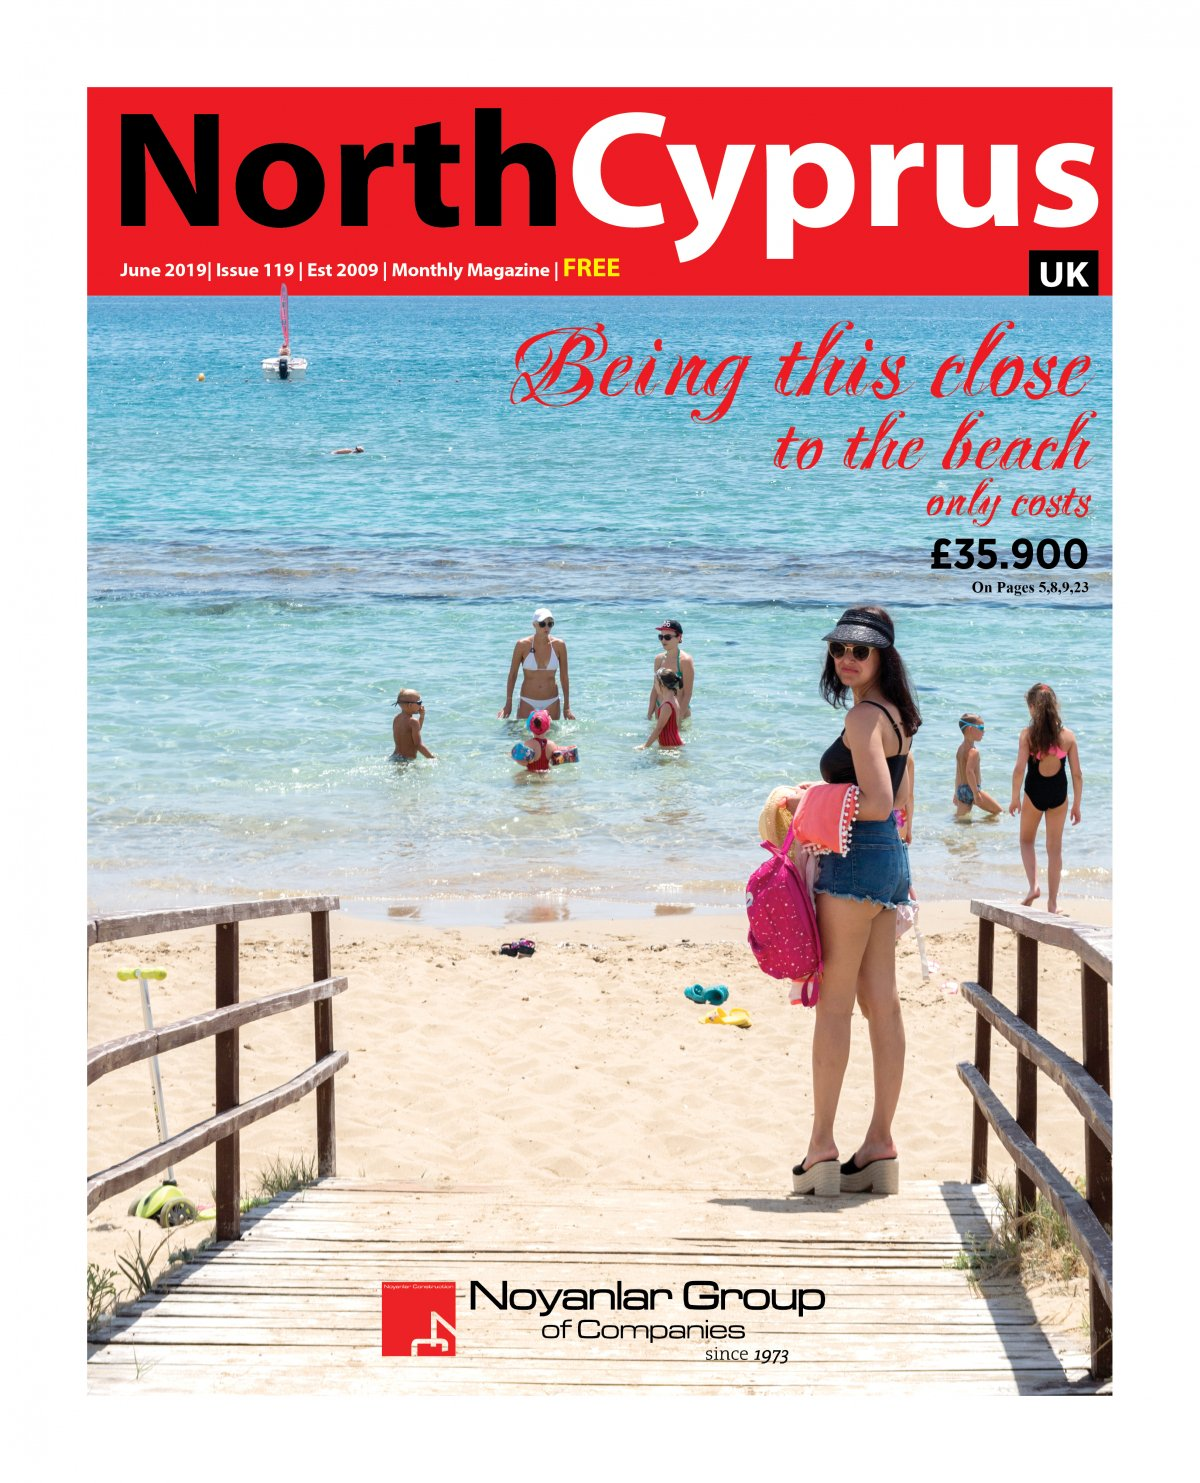 North Cyprus UK - 12.06.2019 Manşeti